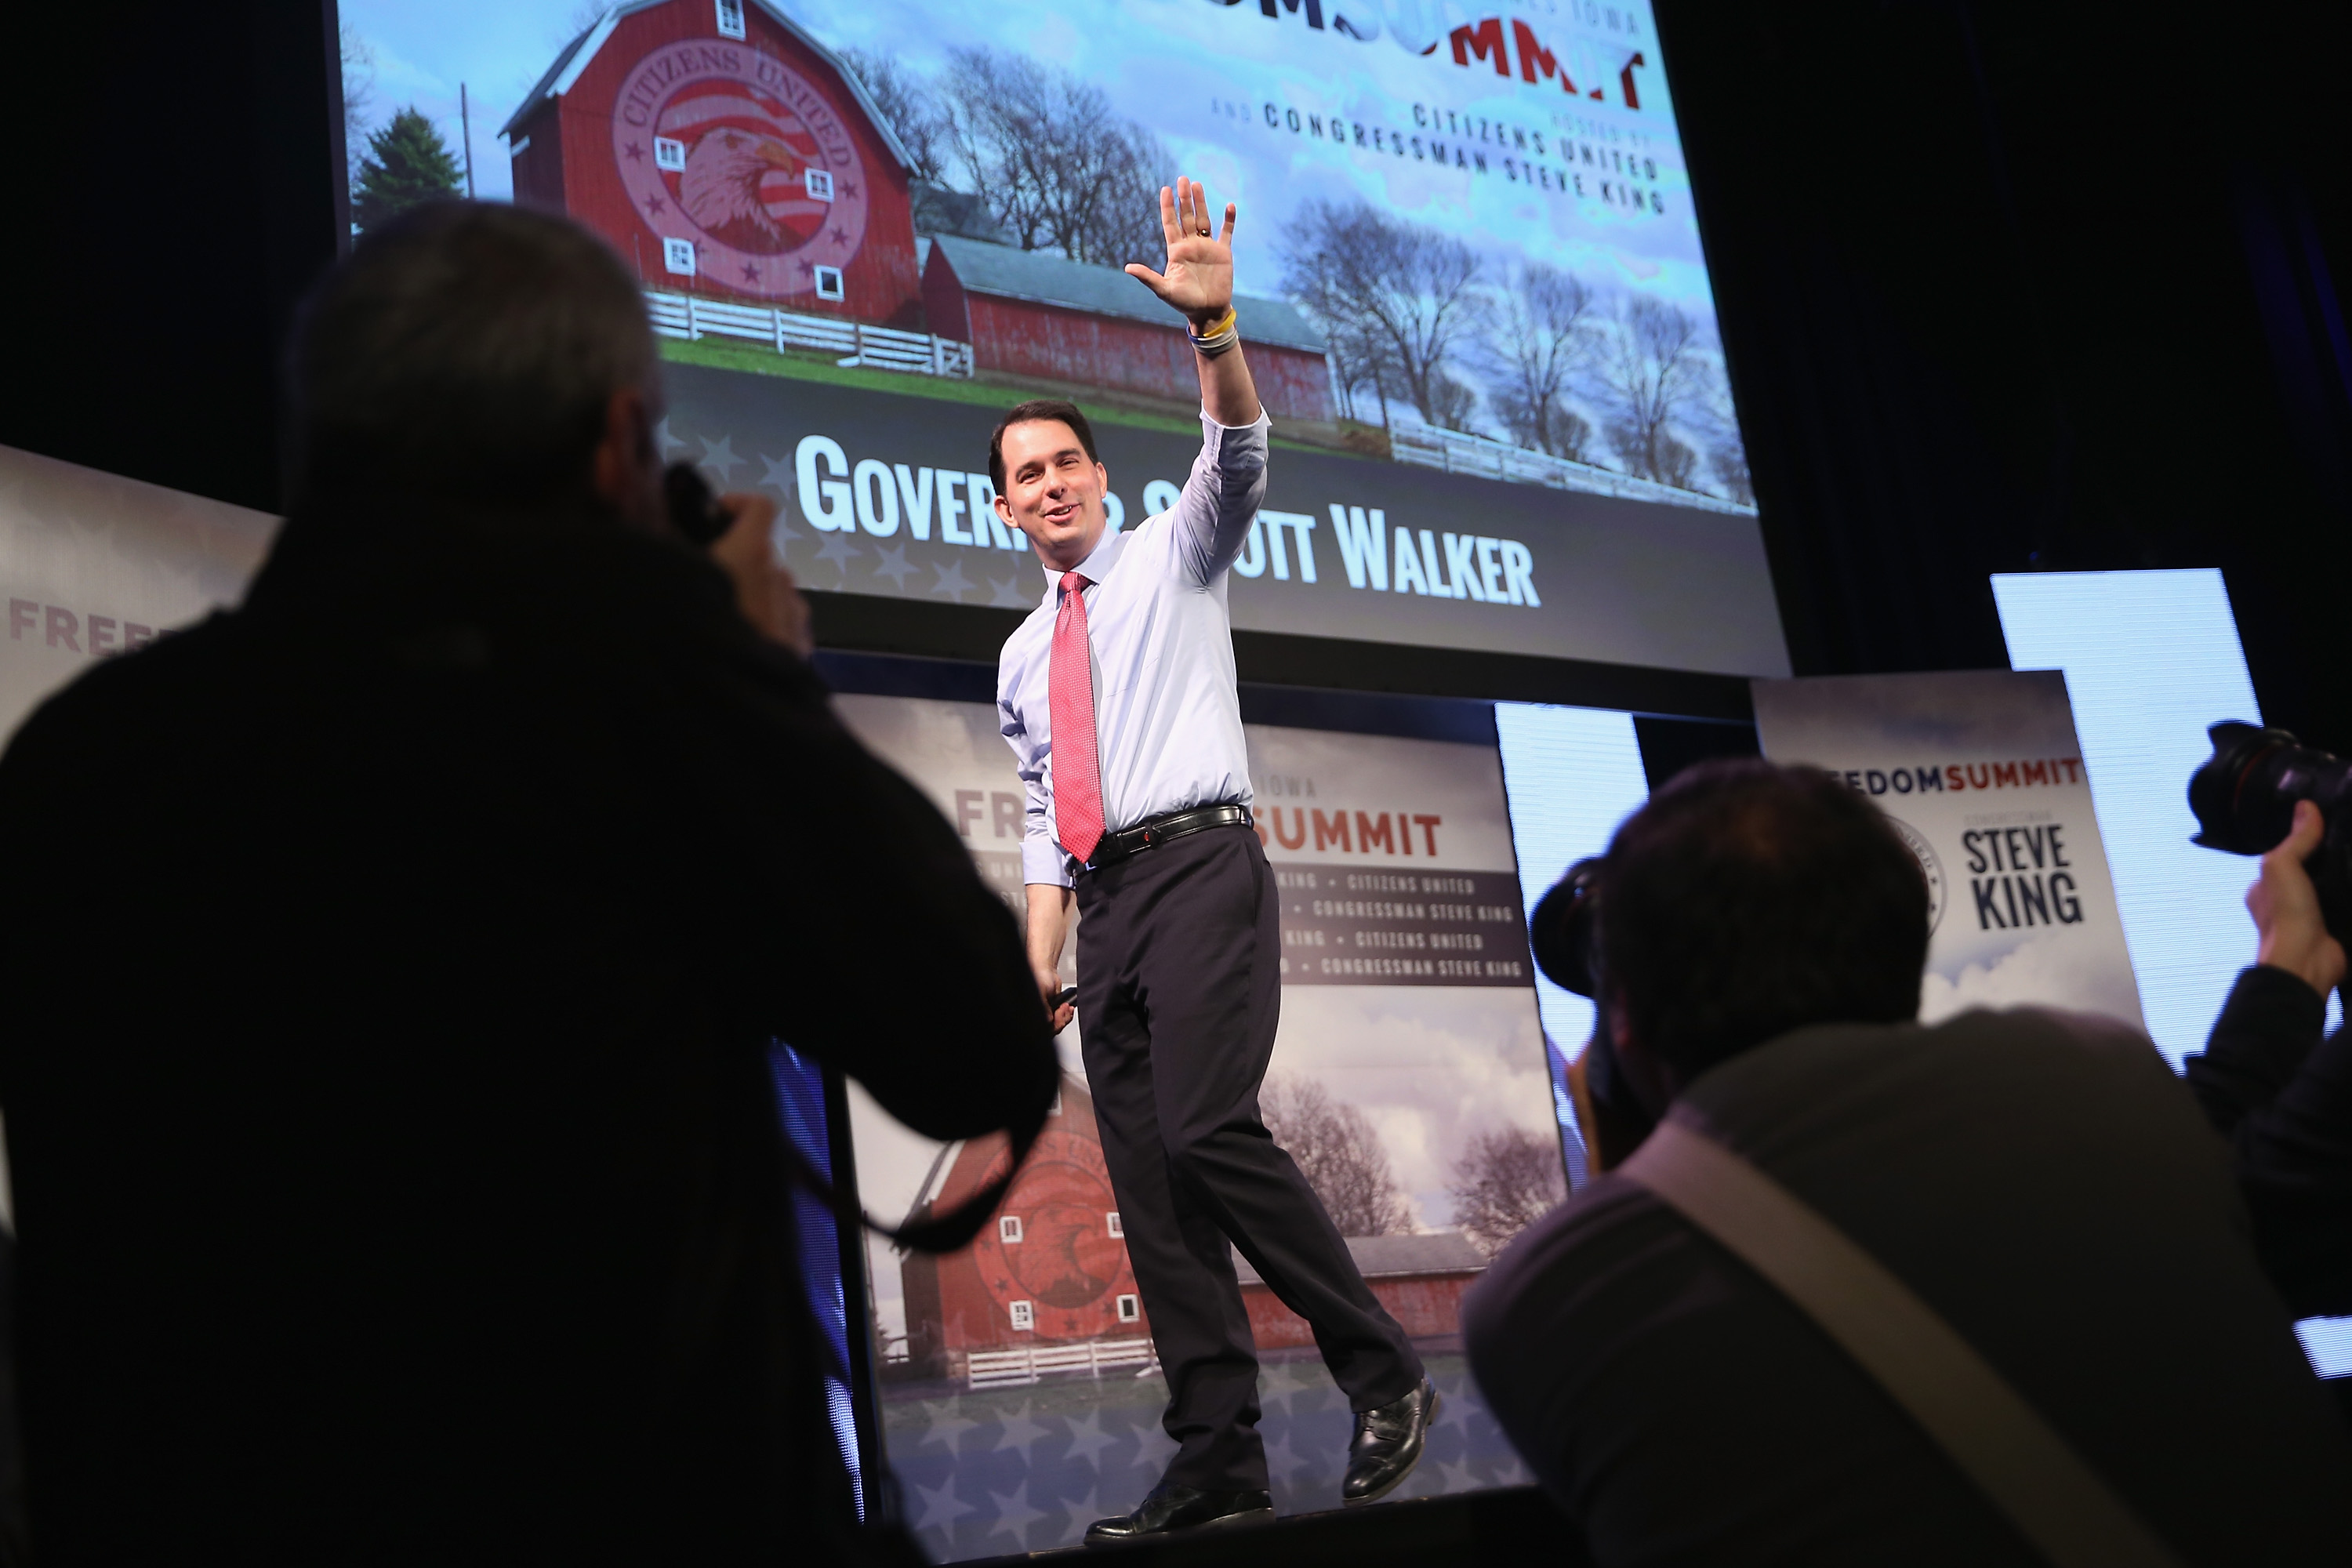 Wisconsin Gov. Scott Walker speaks to guests at the Iowa Freedom Summit on January 24, 2015 in Des Moines, Iowa. The summit is hosting a group of potential 2016 Republican presidential candidates to discuss core conservative principles ahead of the January 2016 Iowa Caucuses.  Scott Olson—Getty Images